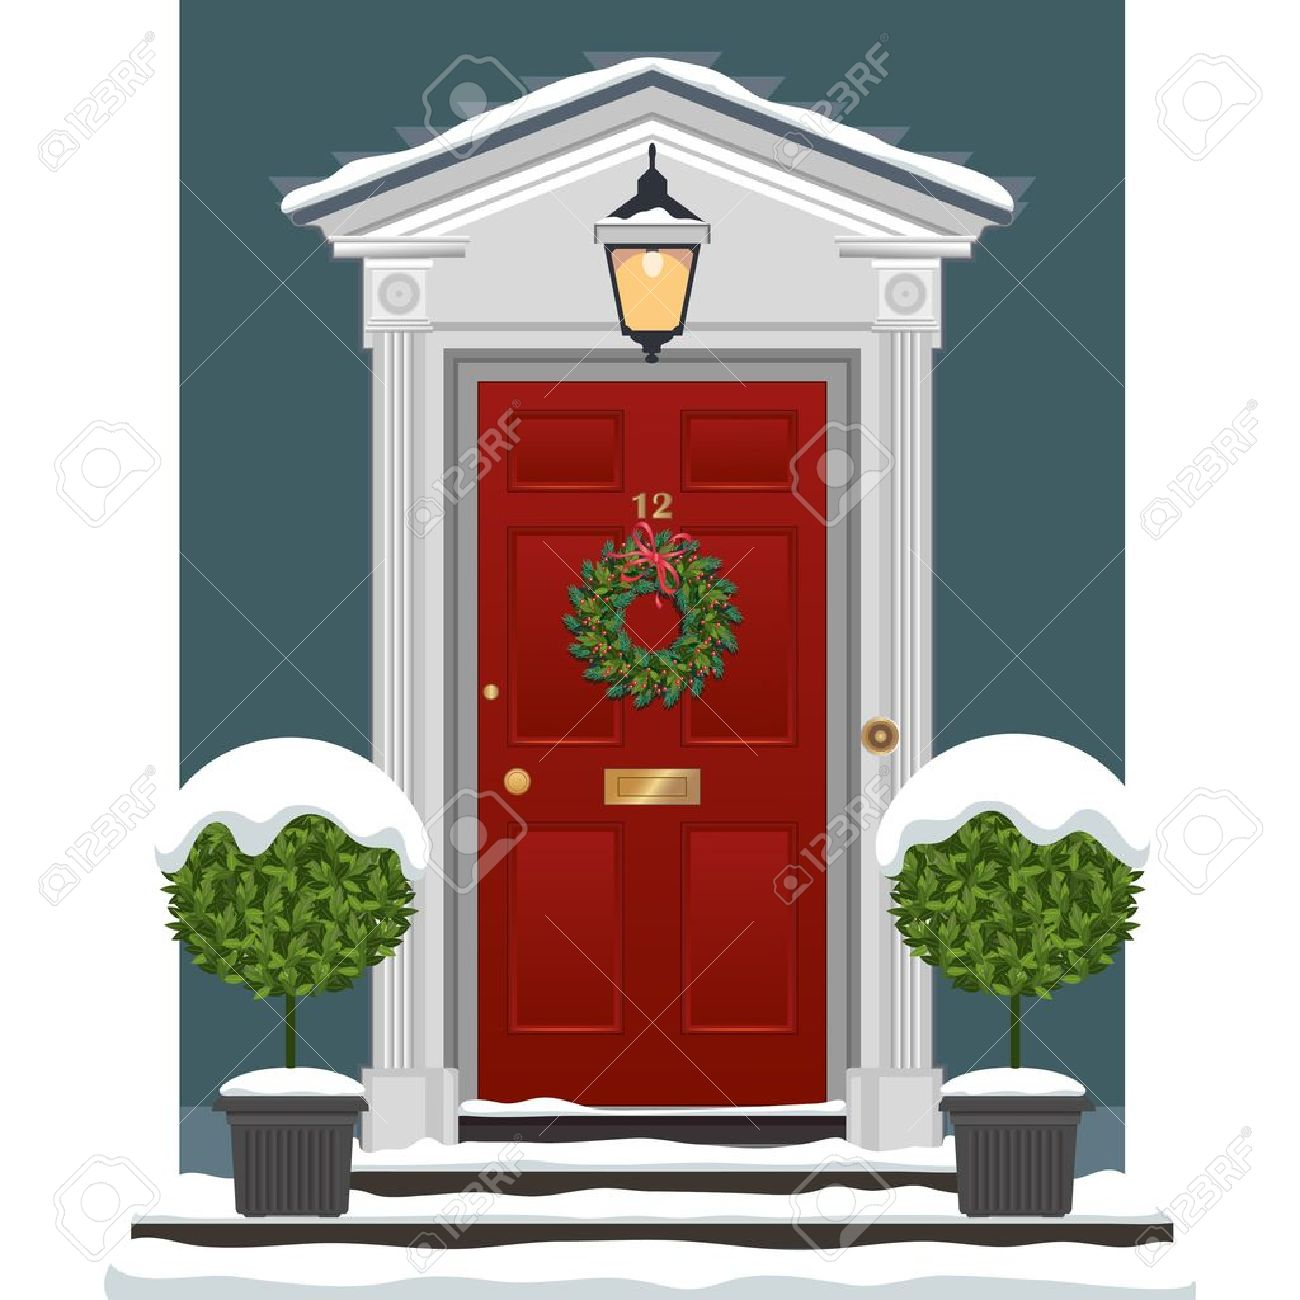 christmas front door clipart. Red Painted Front Door With Christmas Wreath In The Snow. Stock Vector - 20282294 Clipart 123RF.com